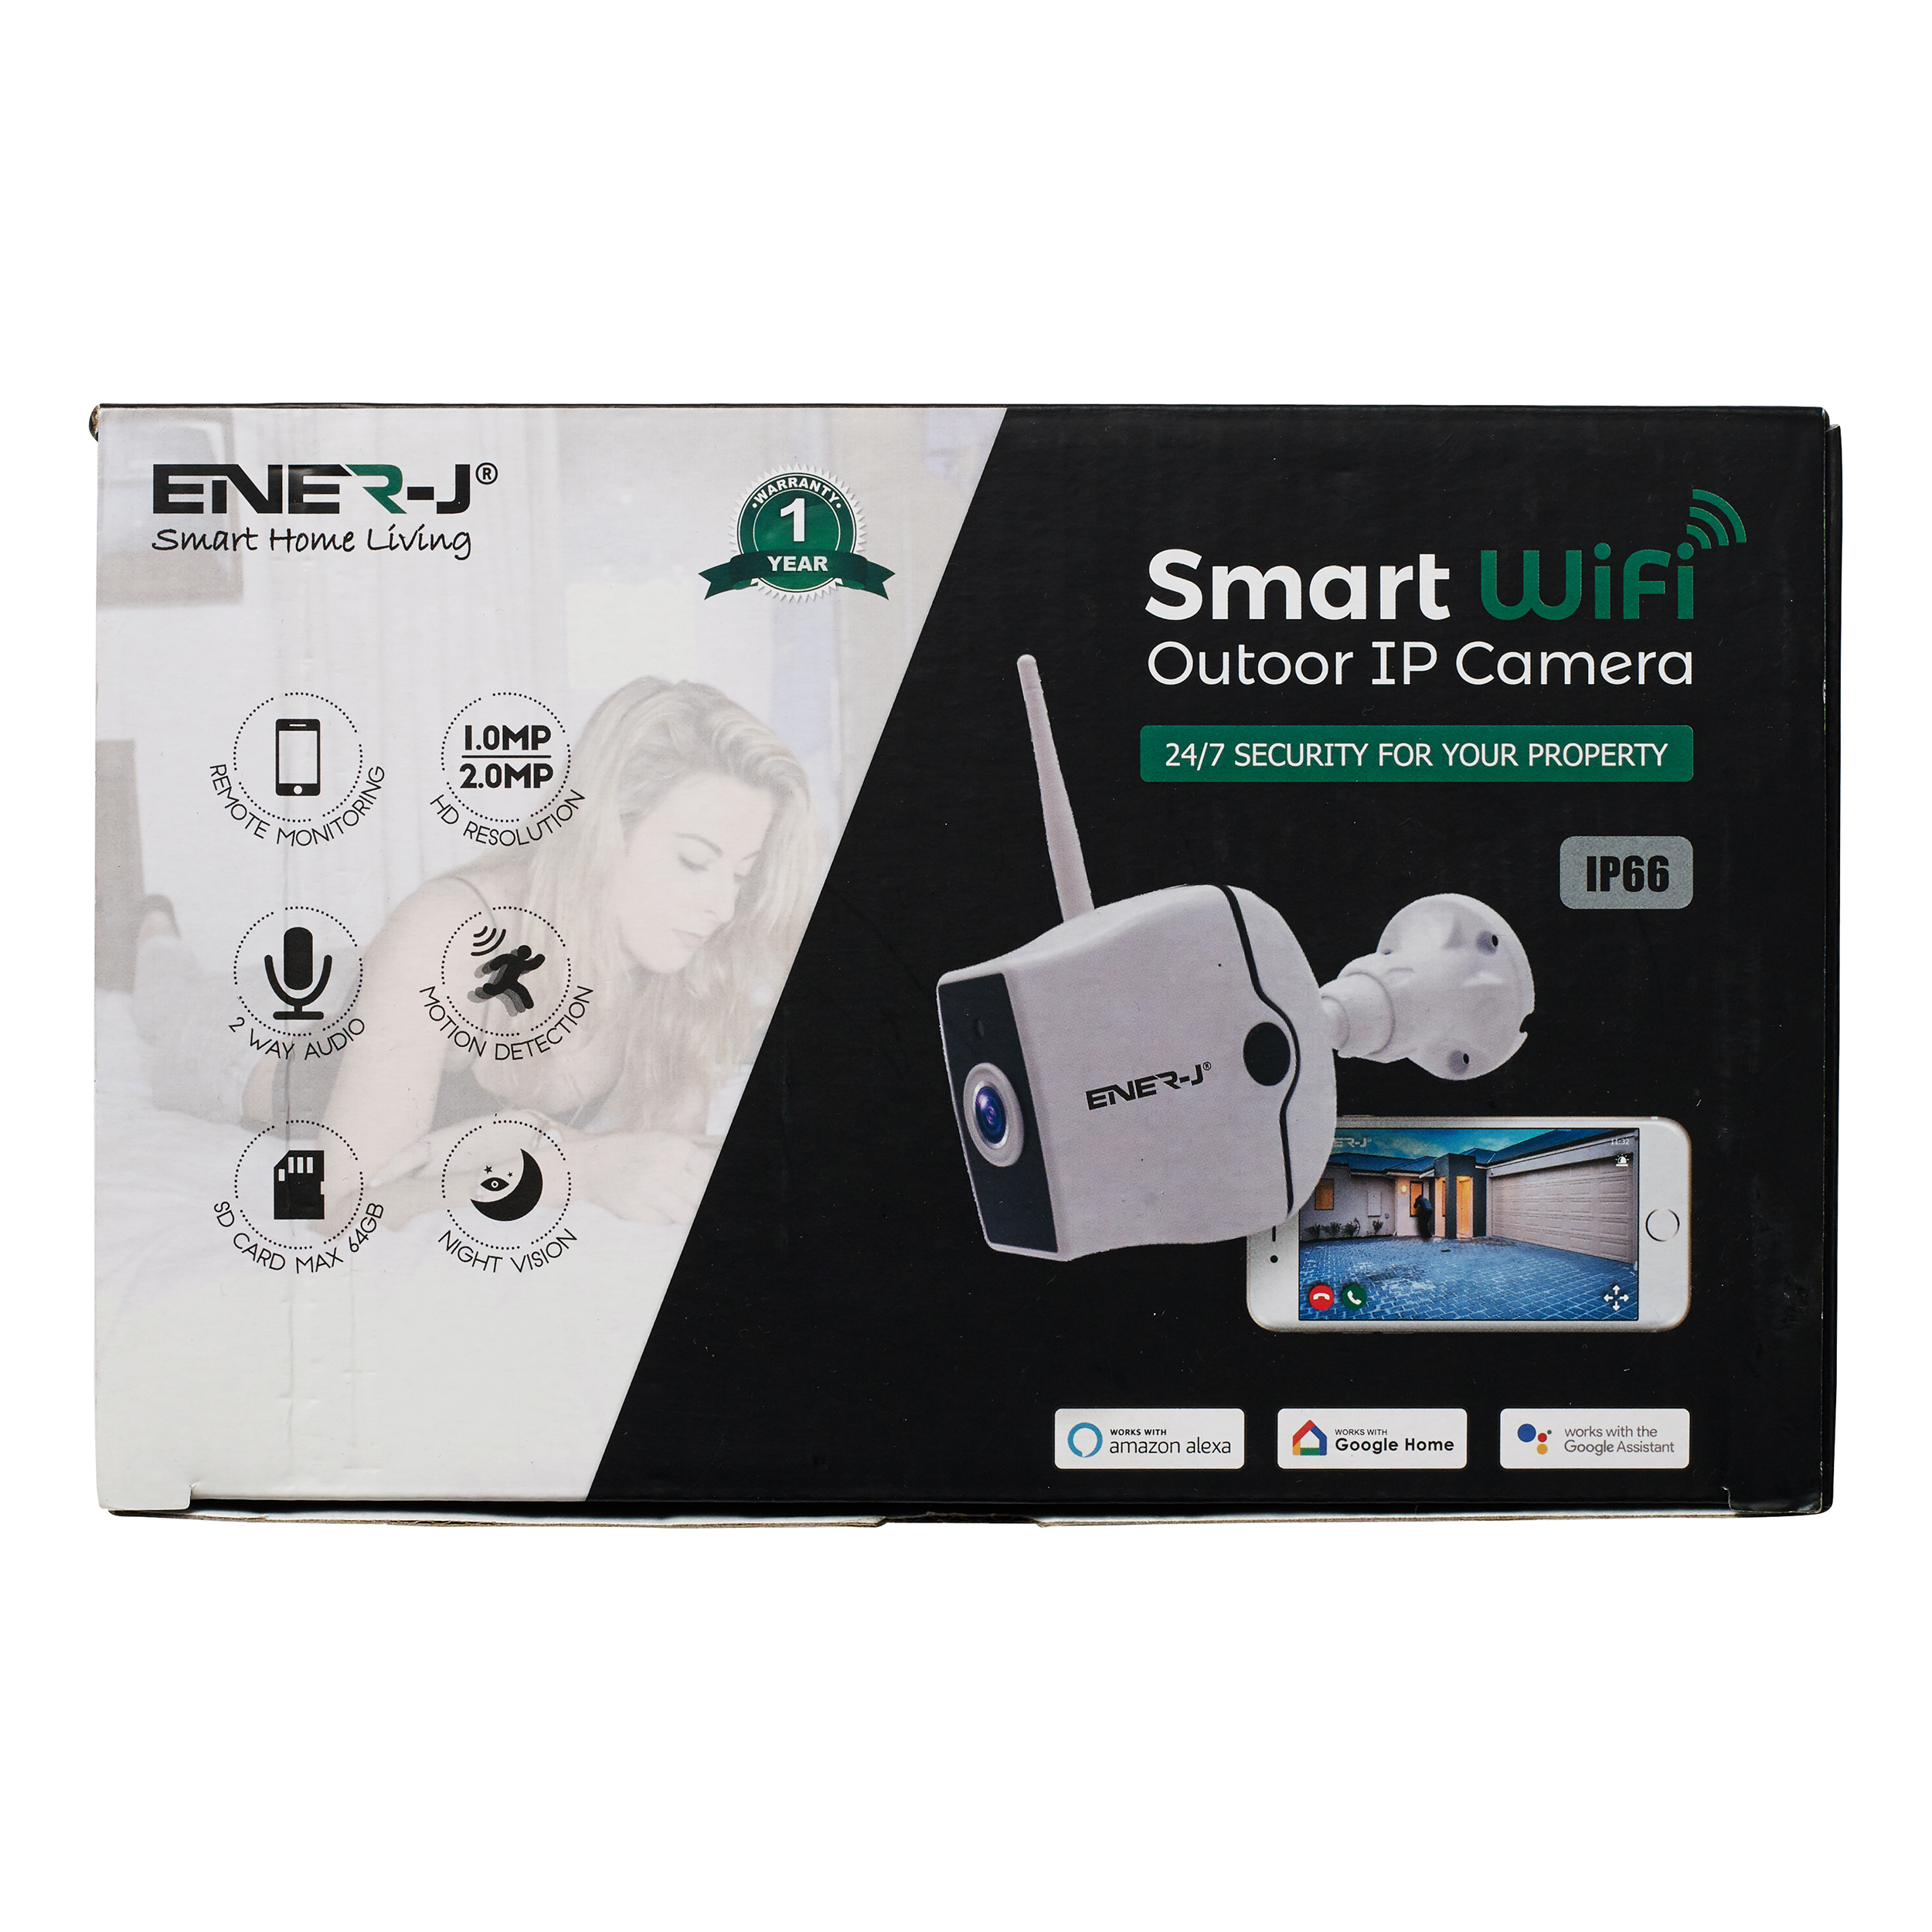 Digital cameras Ener-J WiFi Outdoor IP HD Security Camera With Two Way Audio Ref IPC1021